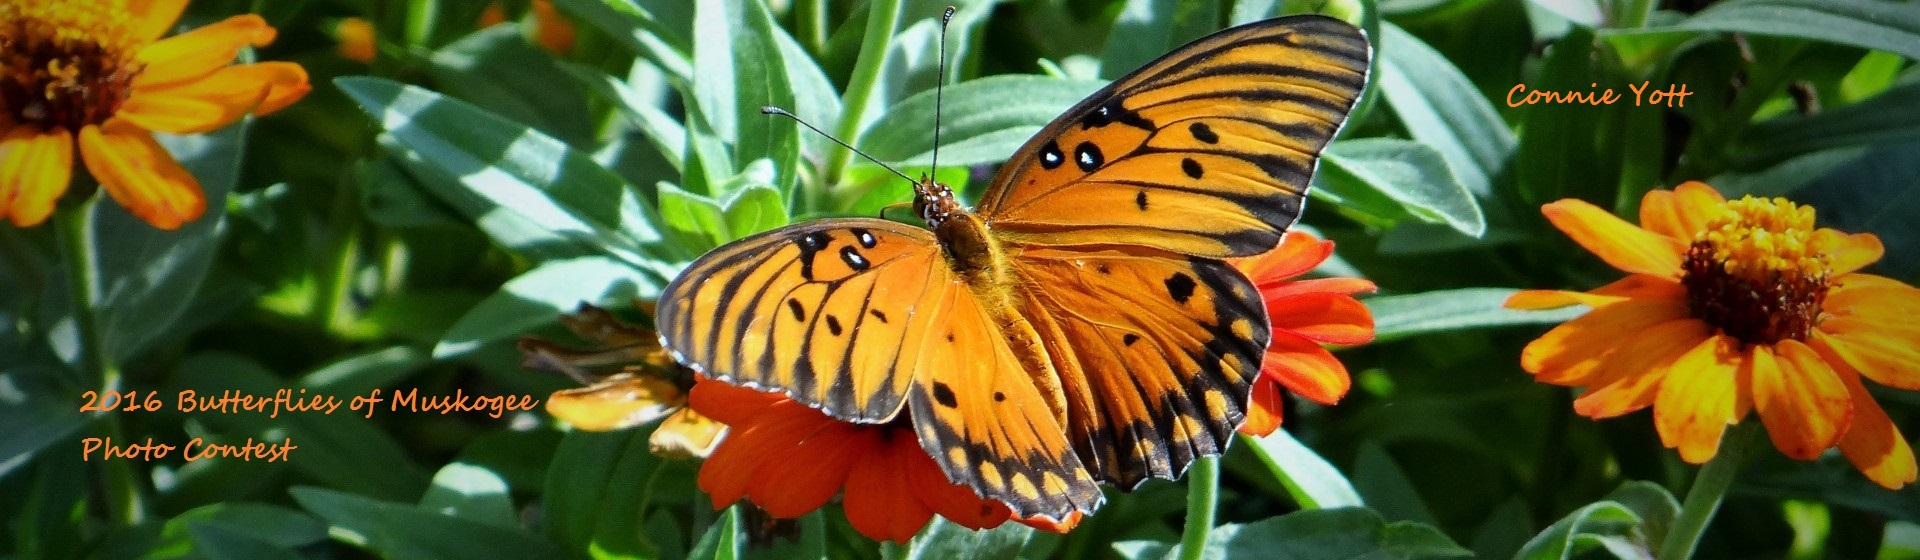 butterflycontest2016-16Web1